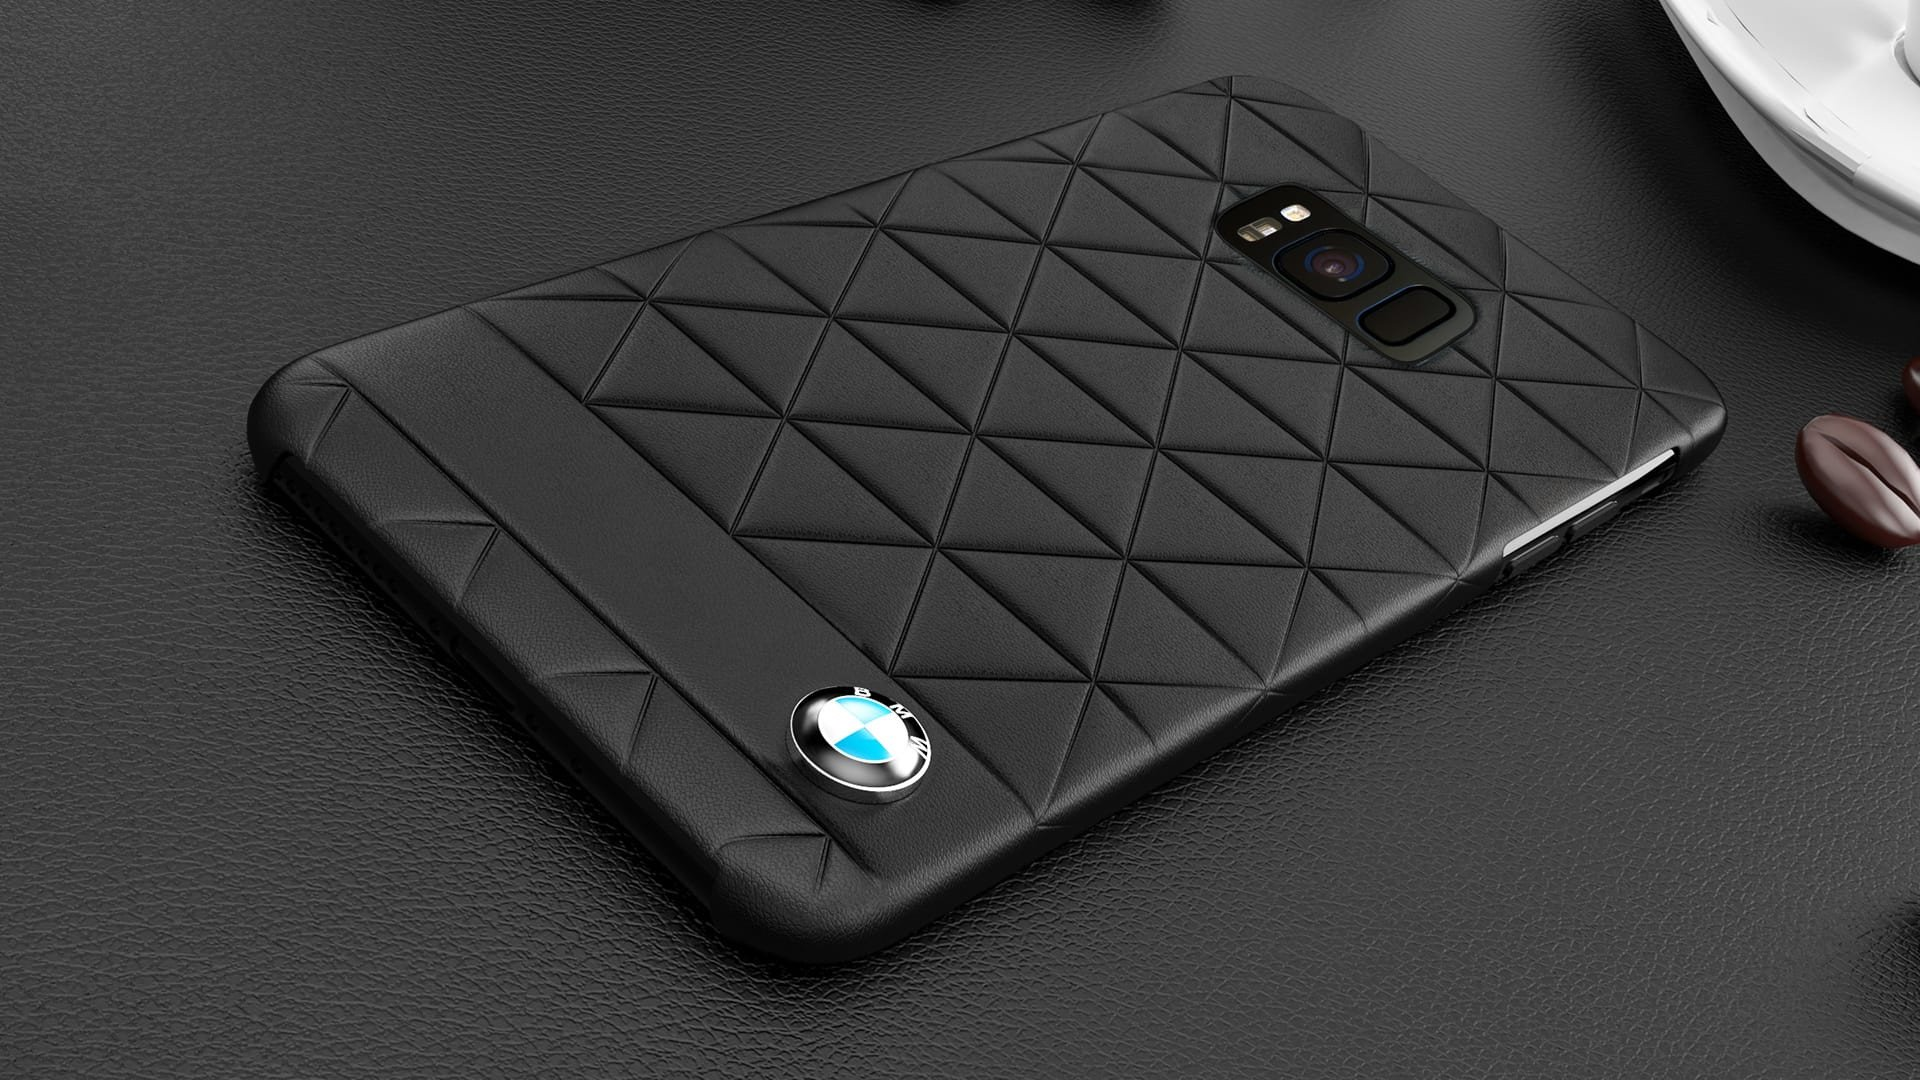 Bmw 174 Samsung S8 Plus Official Superstar Zdrive Leather